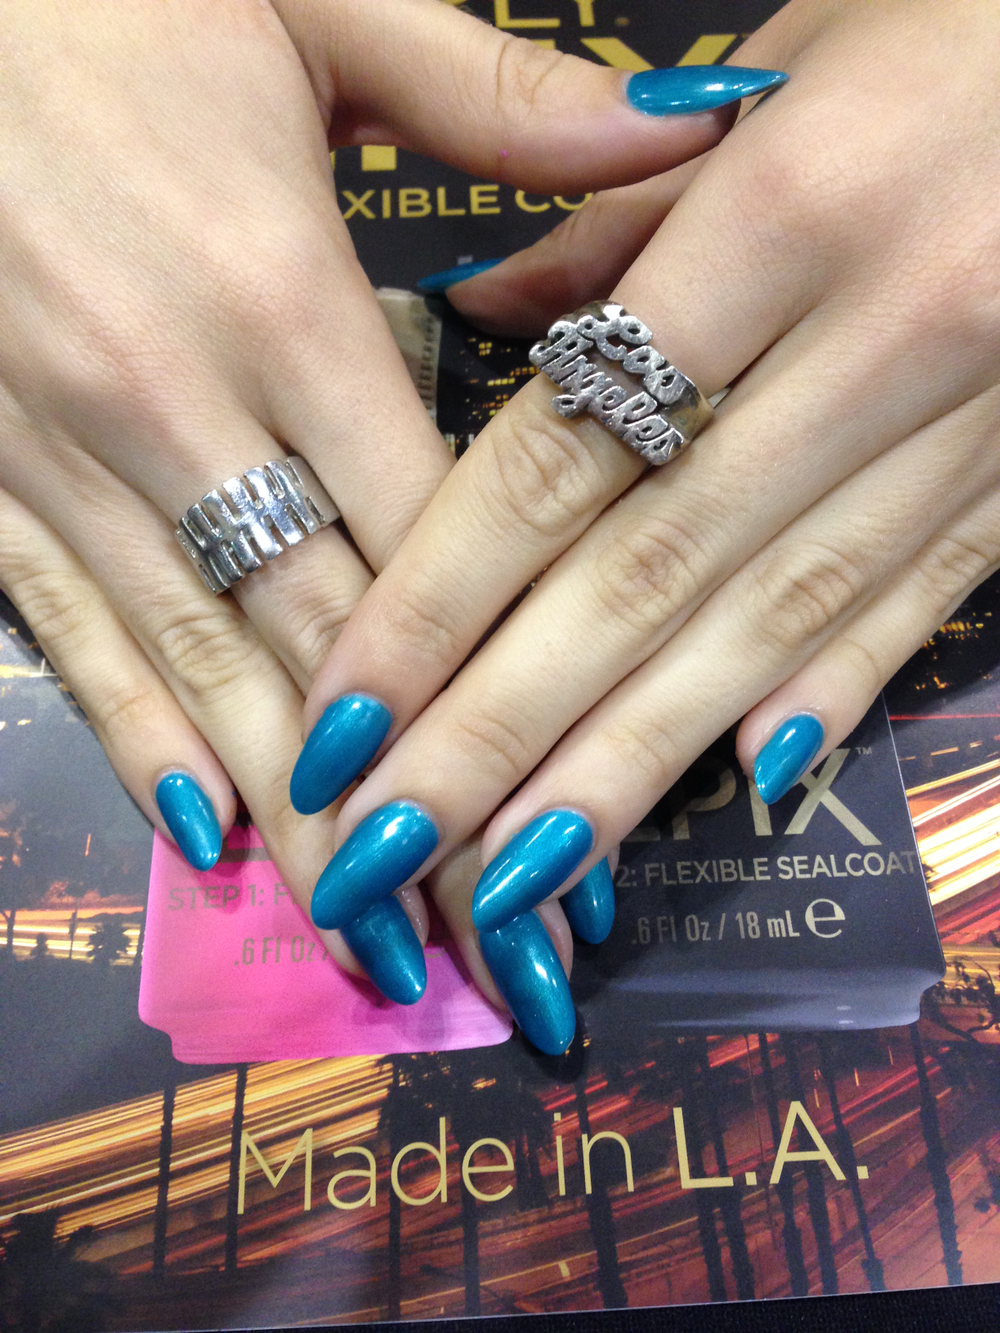 <p>Orly has been made in Los Angeles for 40 years and is celebrating the milestone at the show. Educator Denise Kelley wore Orly GelFX in It's Up to Blue with a cool LA ring for the occasion.</p>